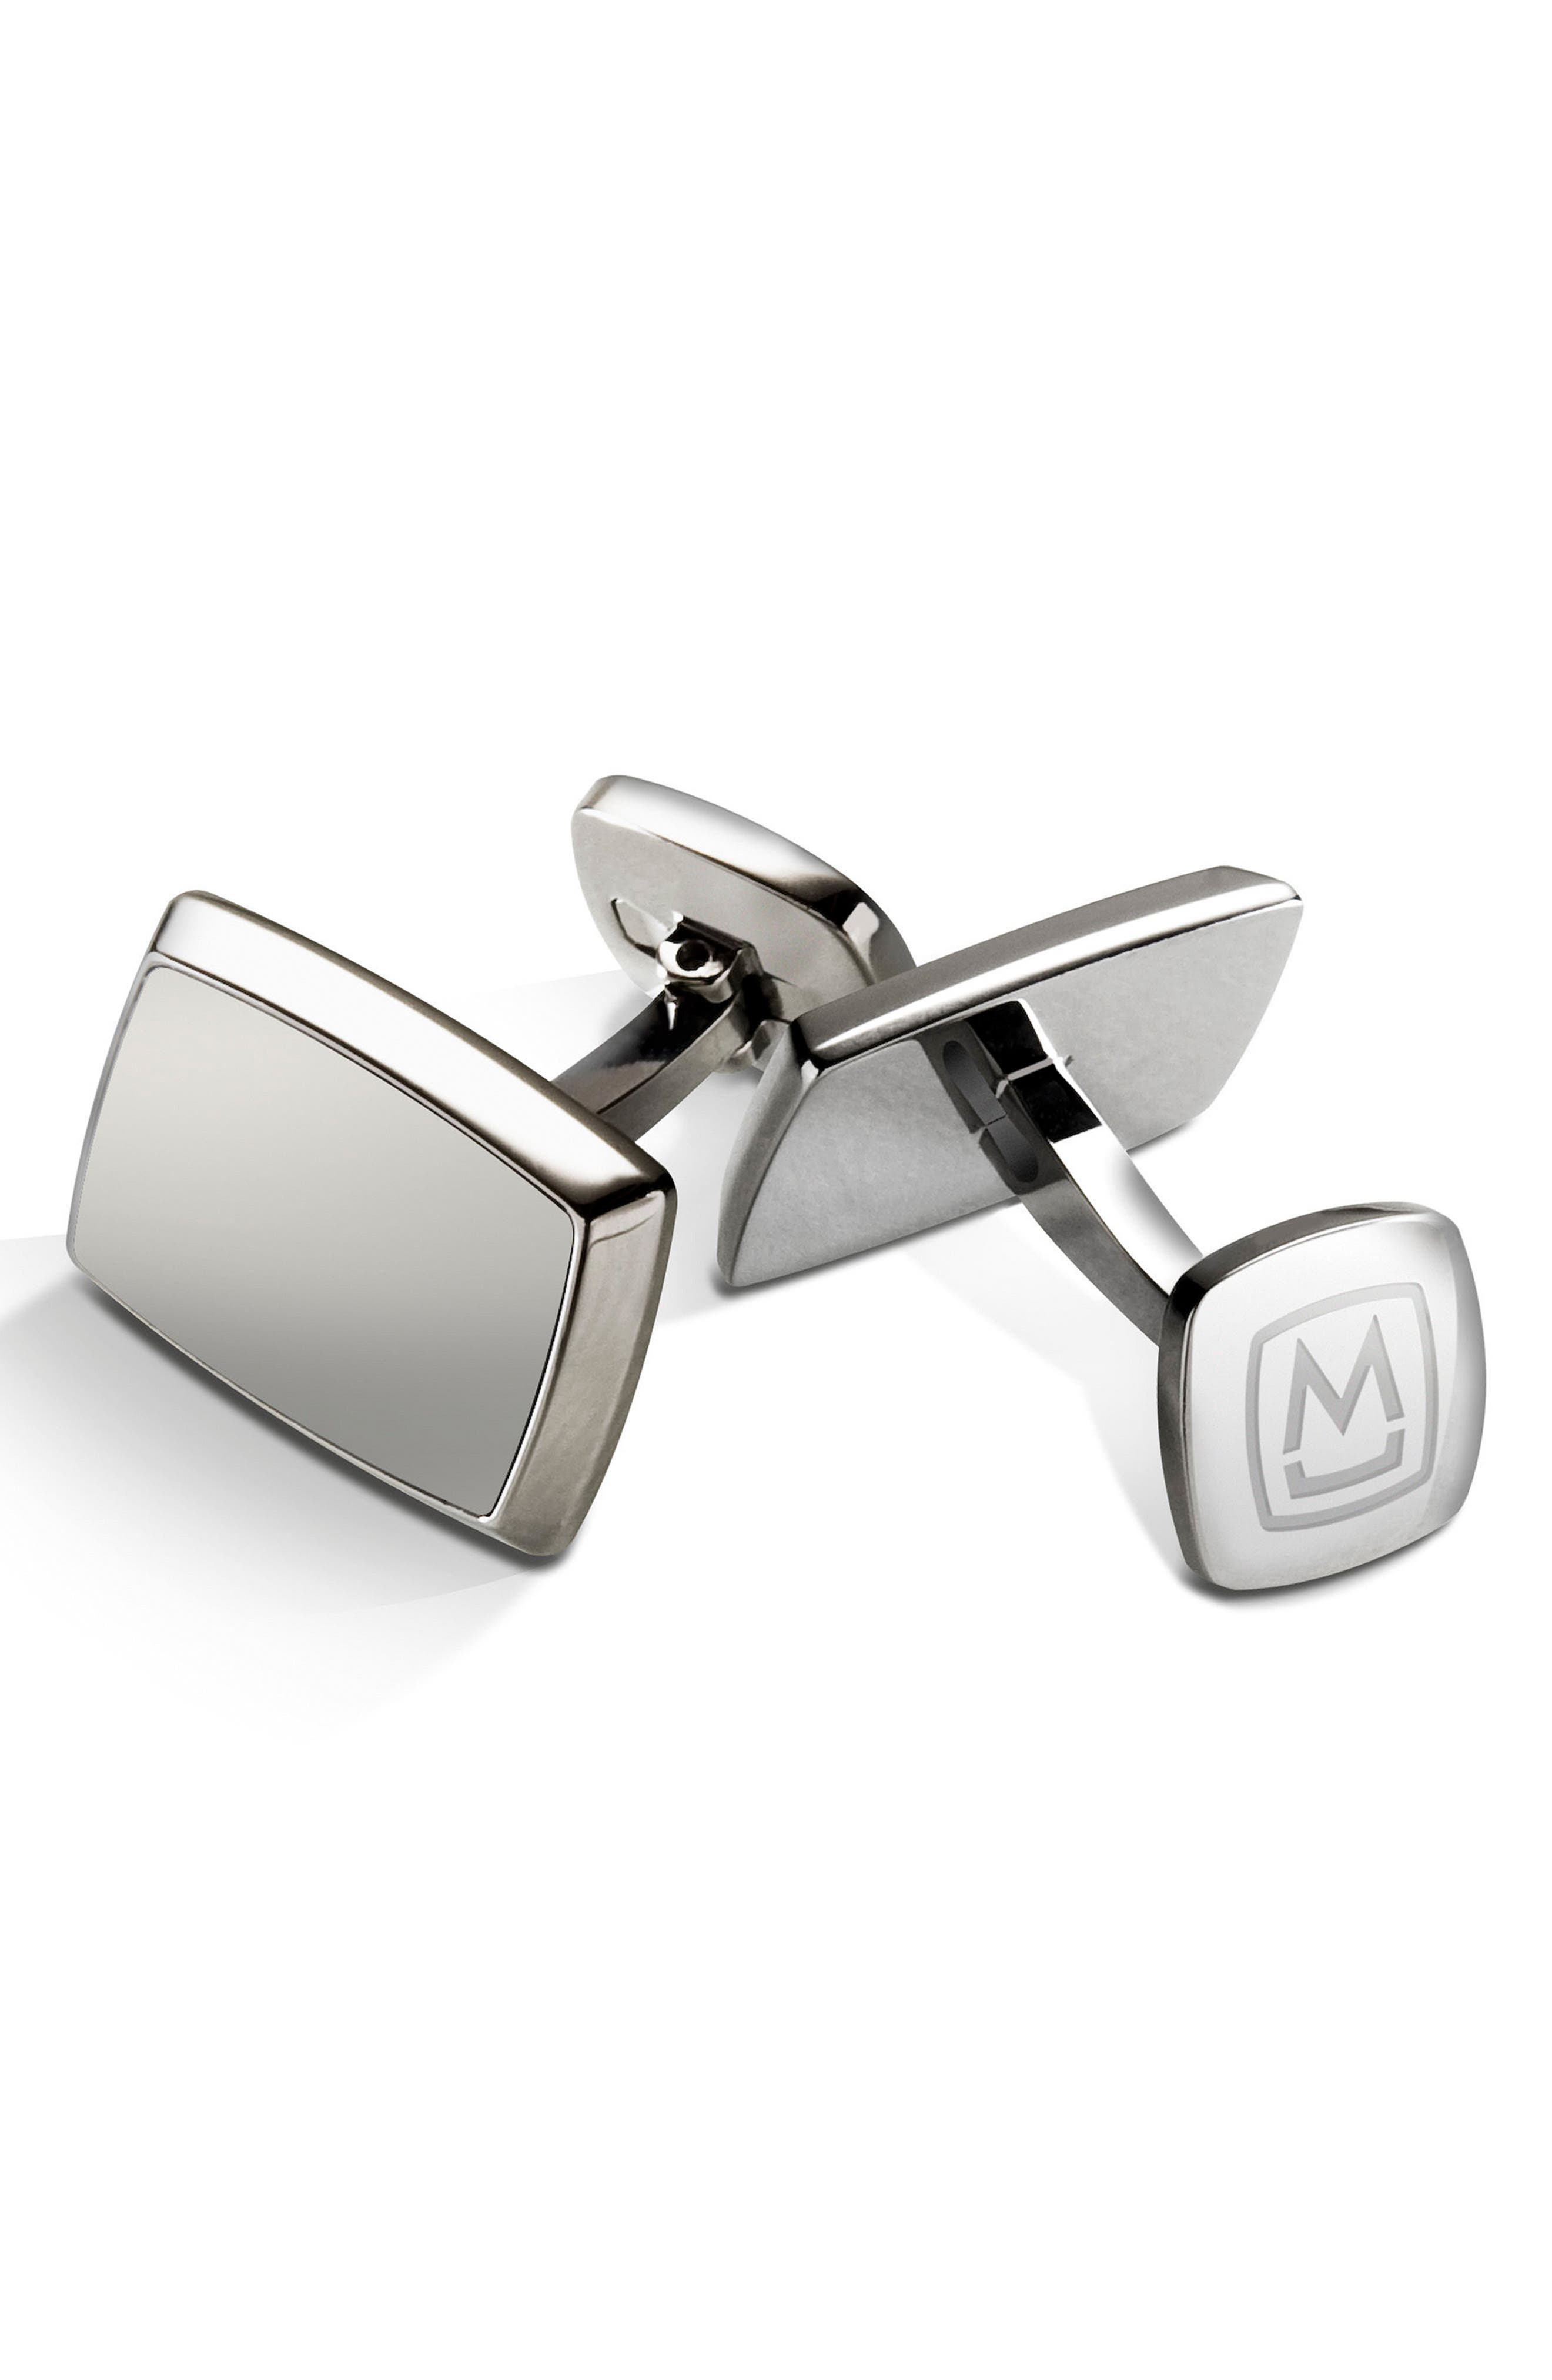 M-Clip Stainless Steel Cuff Links,                             Main thumbnail 1, color,                             040